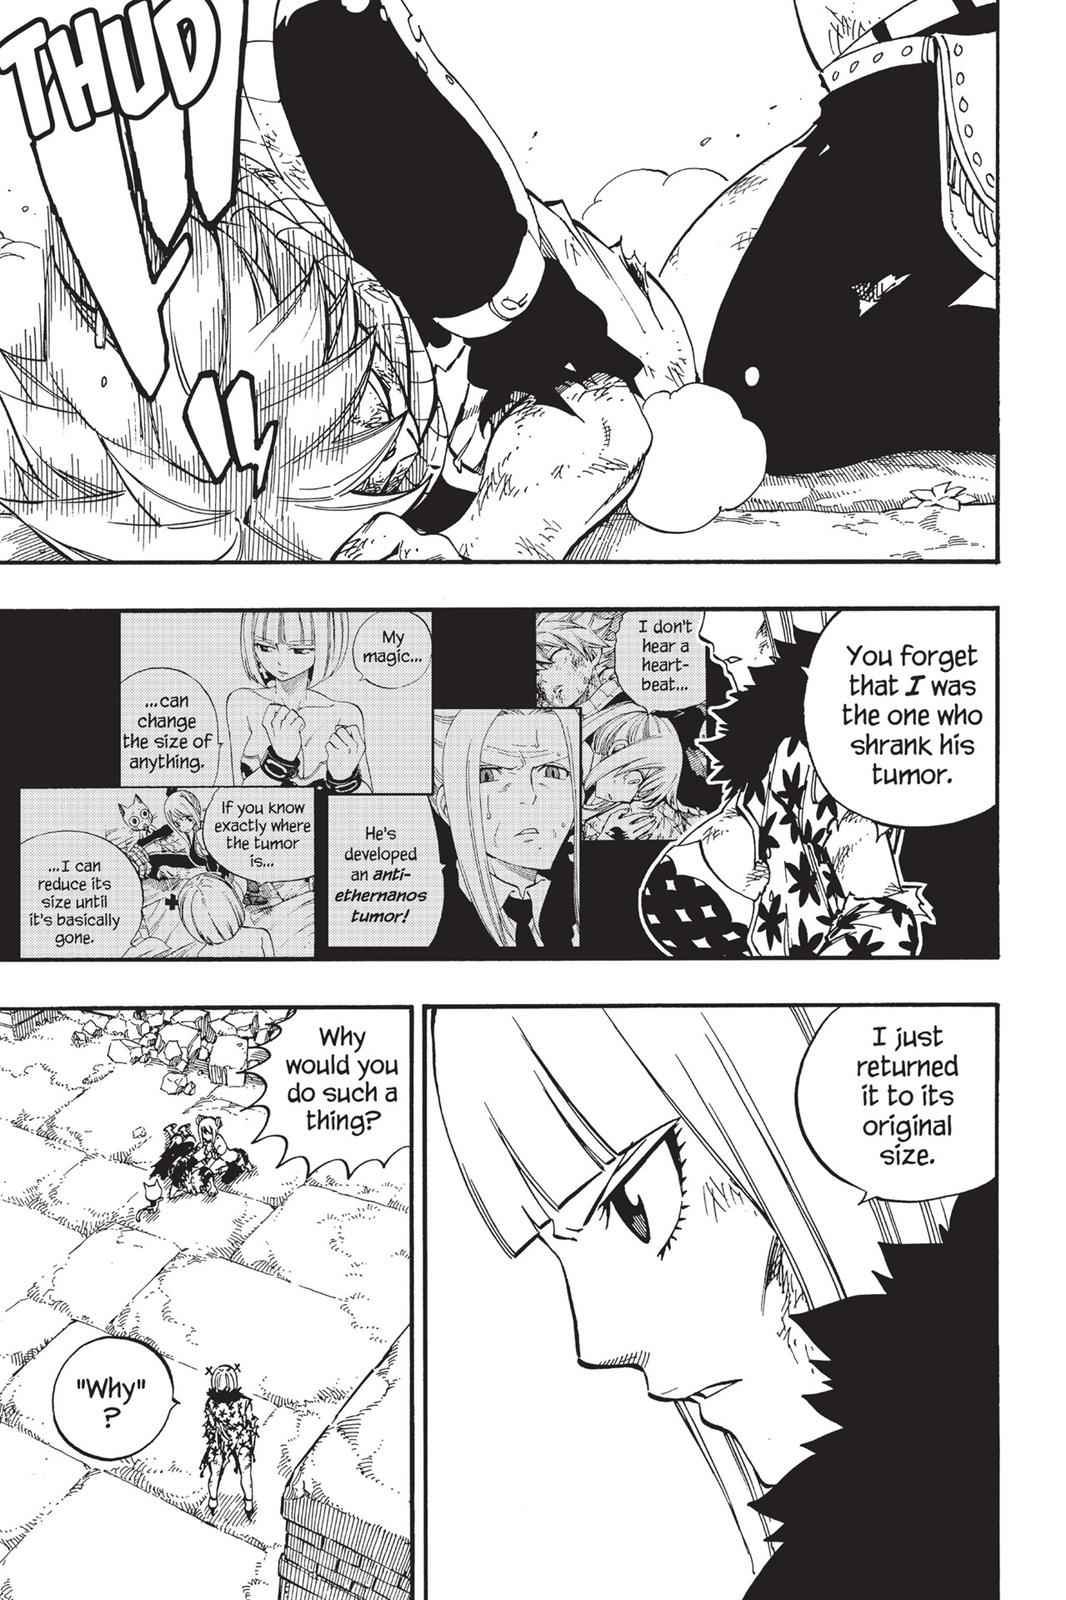 Fairy Tail Chapter 501 Page 6